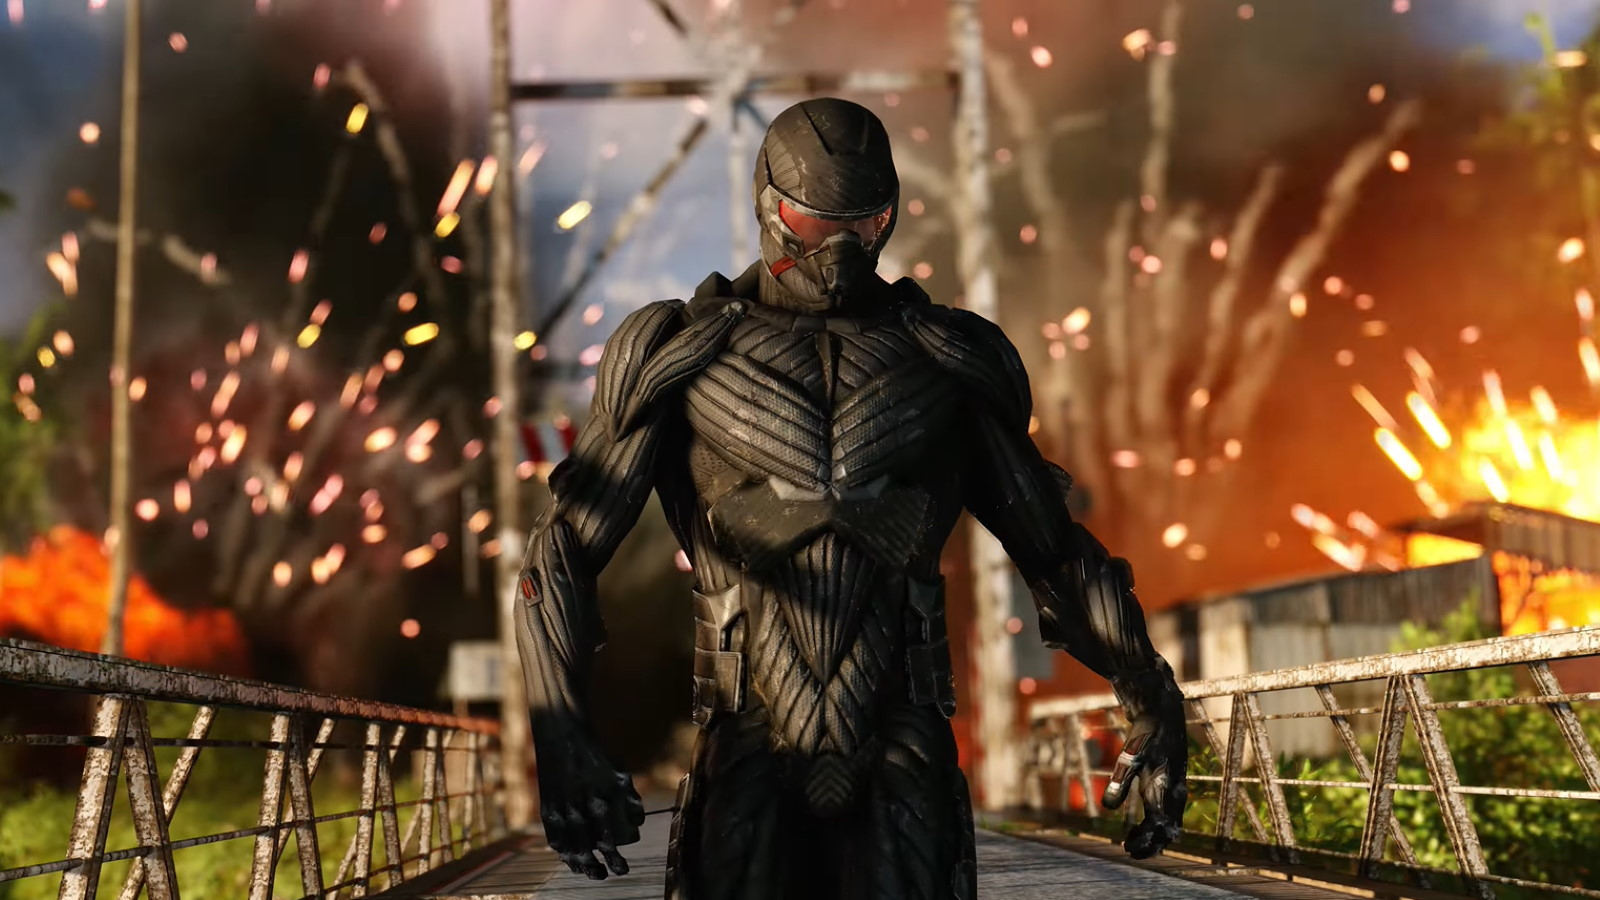 A screenshot showing Crysis Remastered's iconic nanosuit.